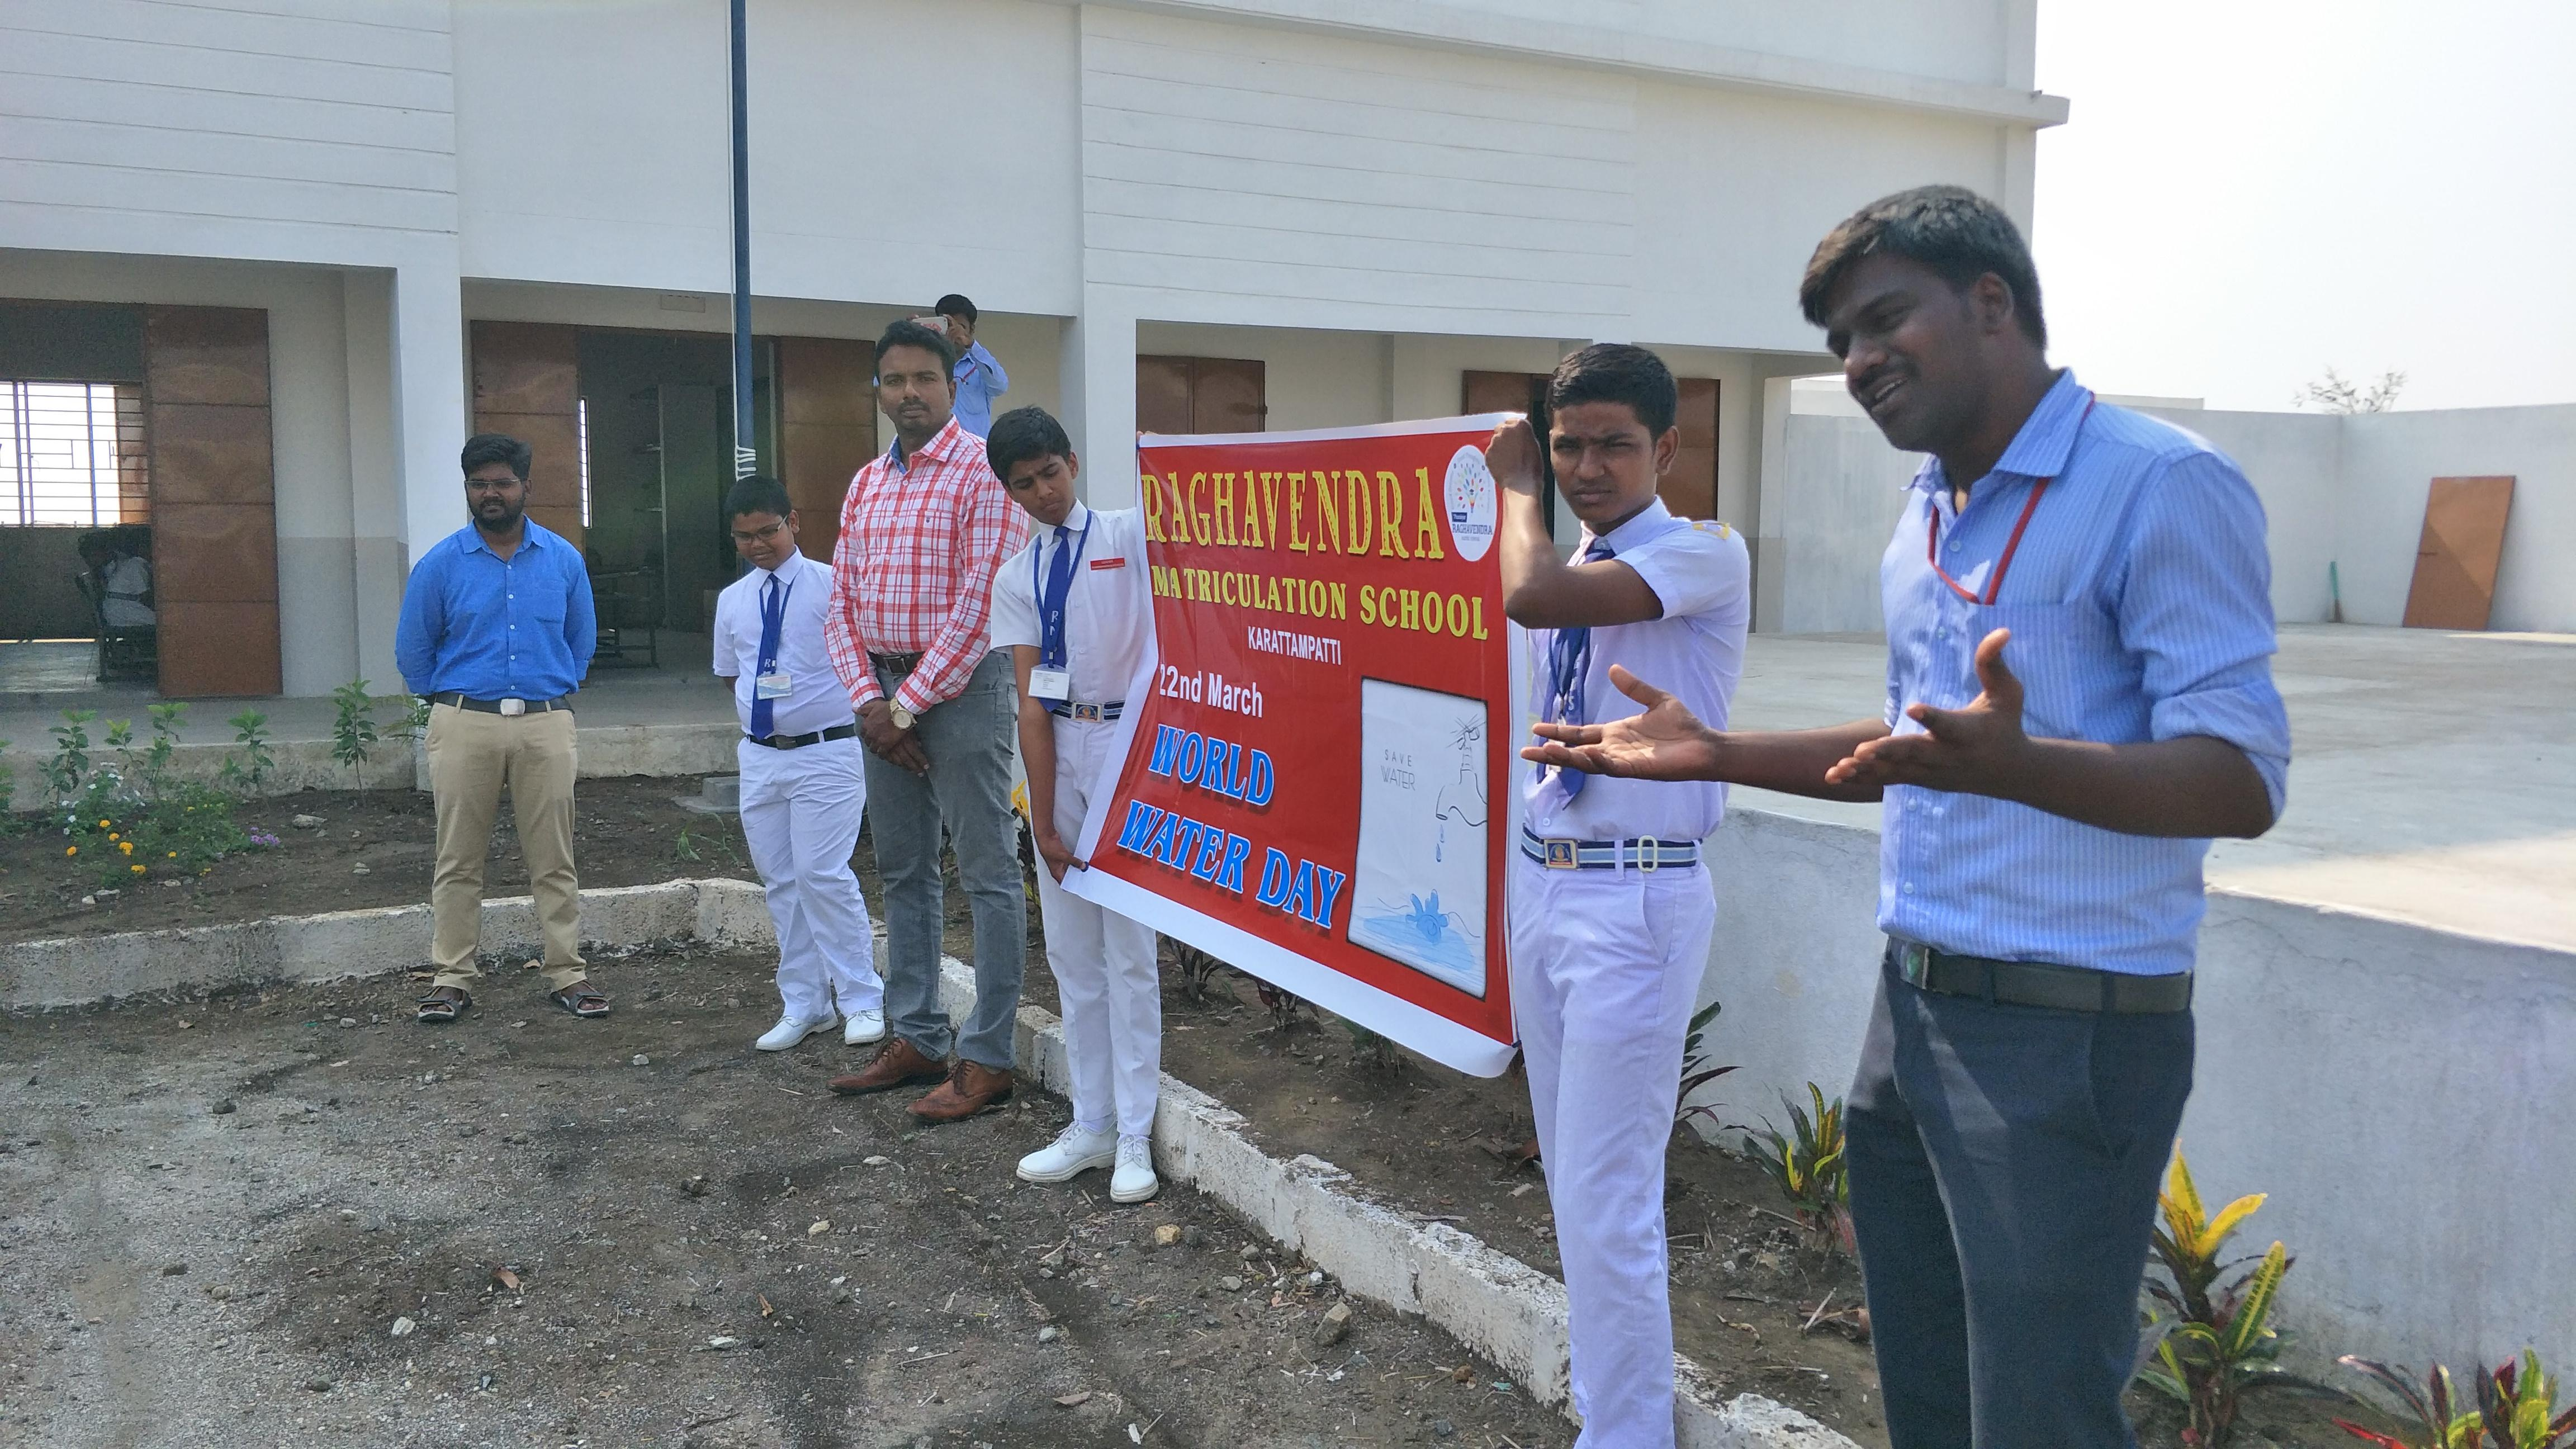 World Water Day Celebration at Raghavendra Matriculation School